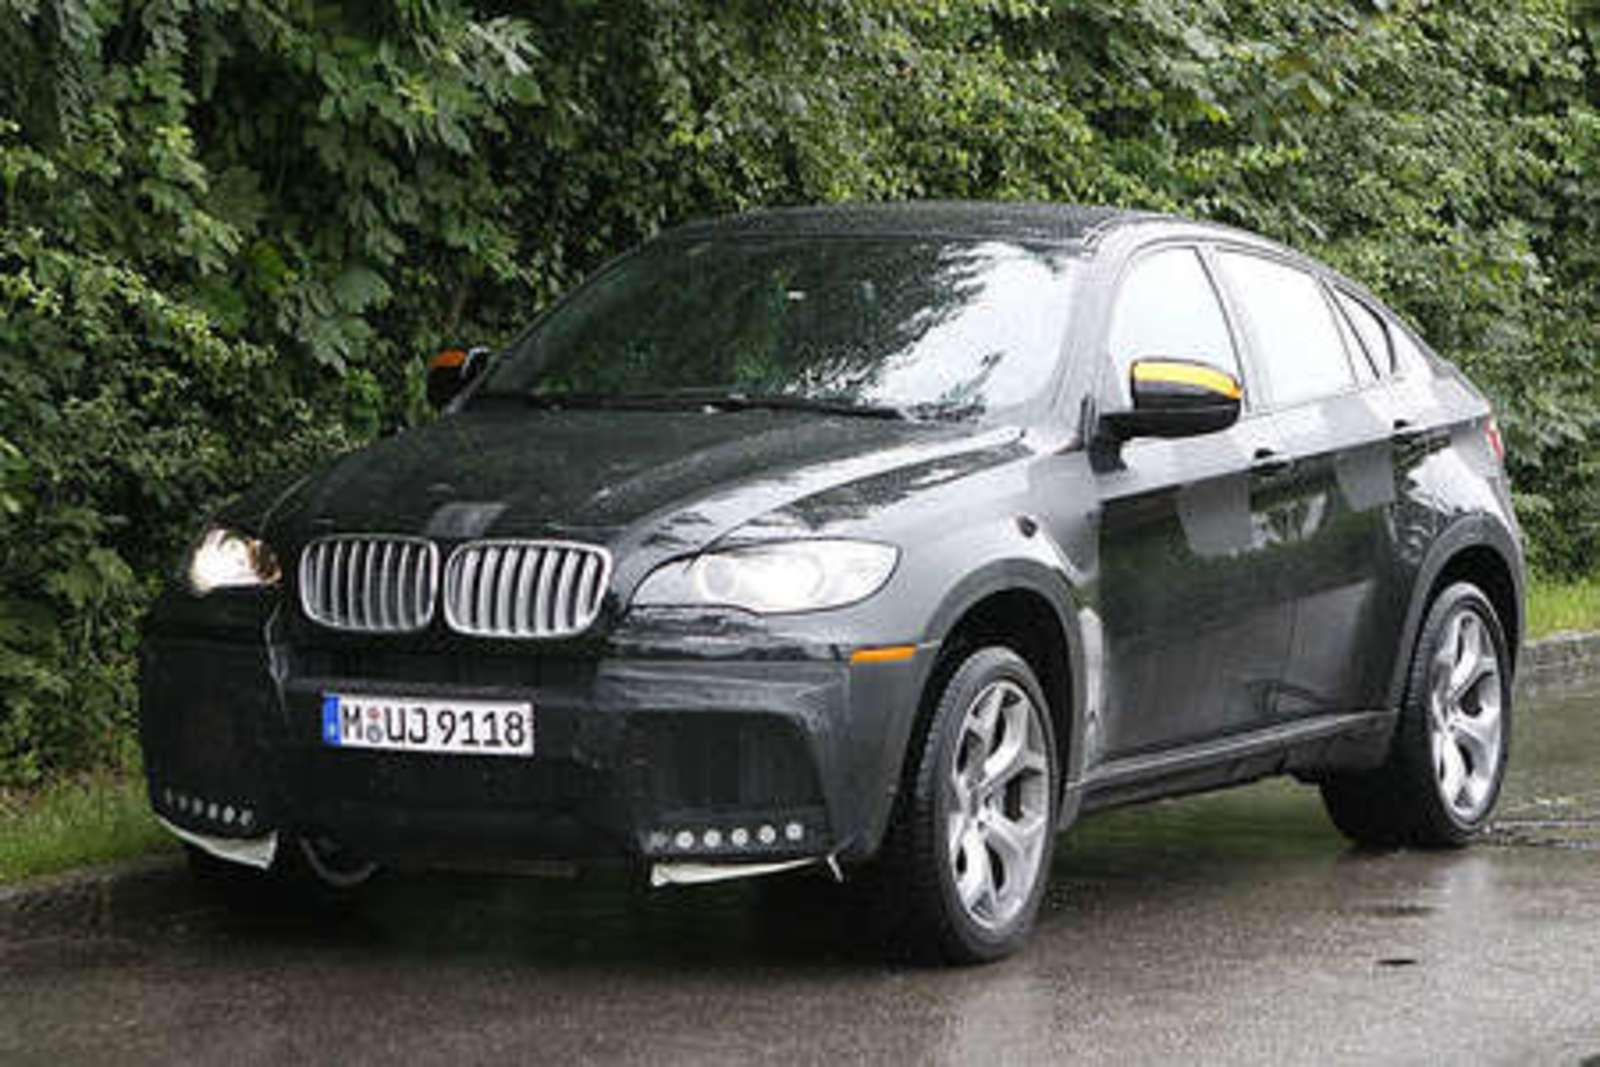 bmw x6 m version spy shots news gallery top speed. Black Bedroom Furniture Sets. Home Design Ideas